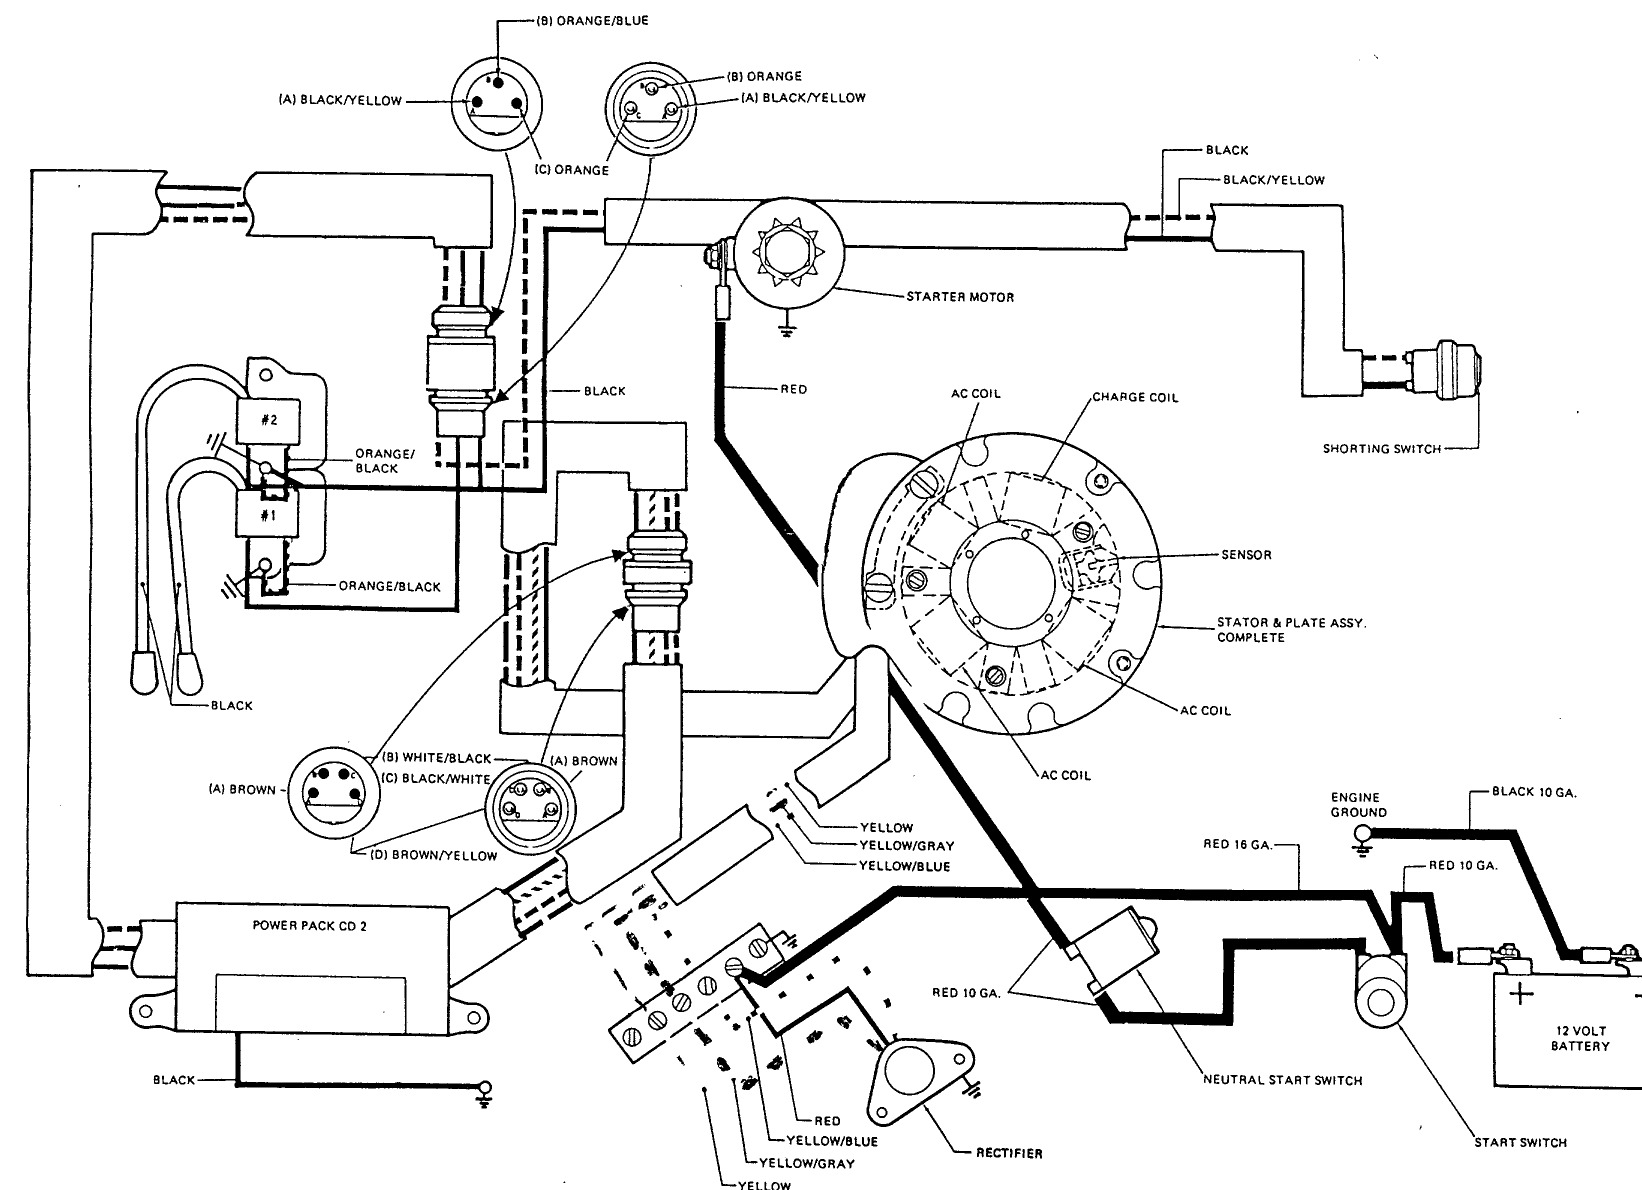 Kill Switch Wiring 83 Johnson V4 - Wiring Diagram •